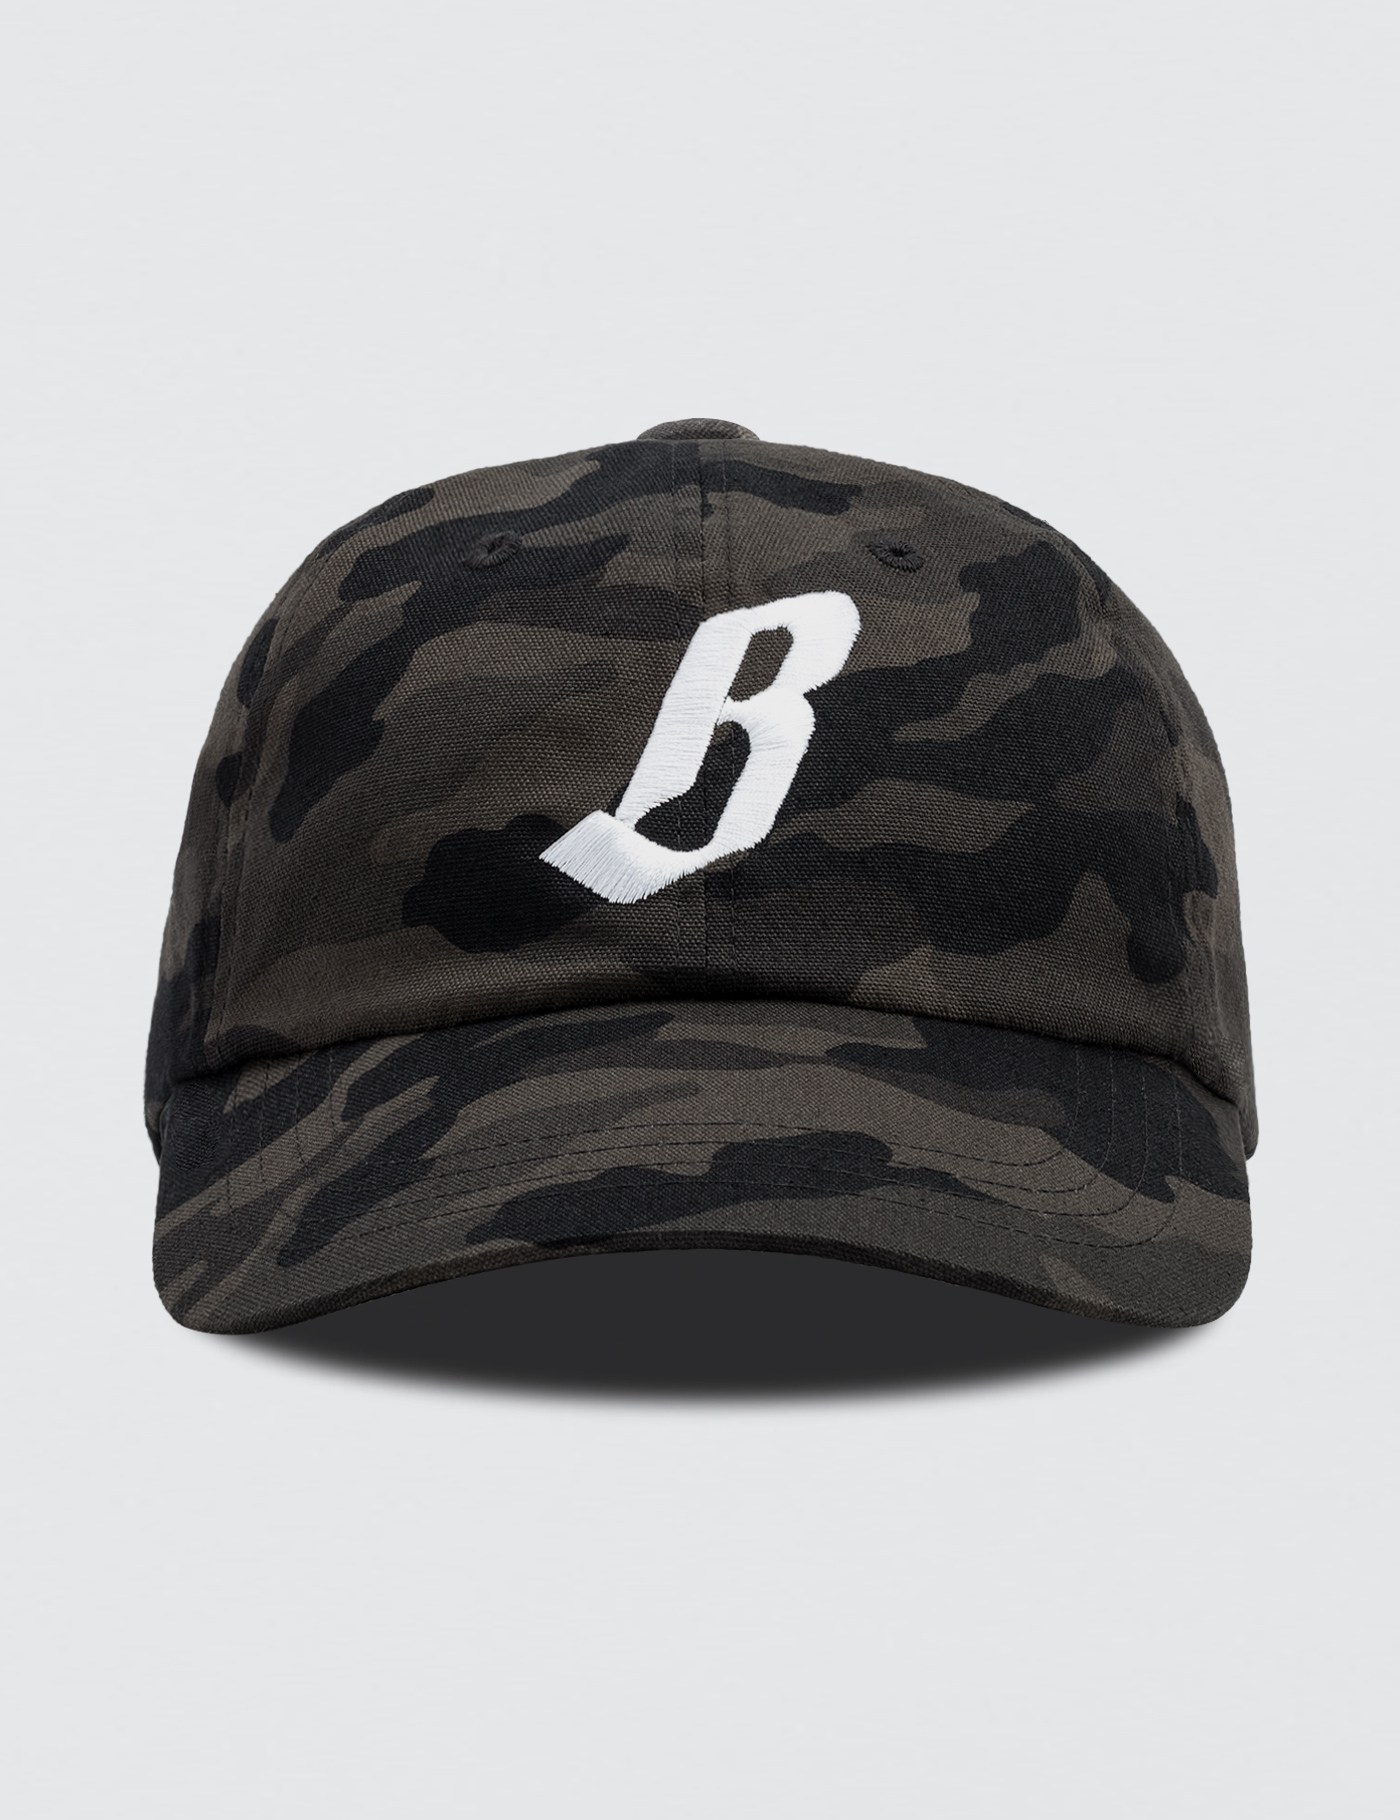 92d7882089f56 Buy Original Billionaire Boys Club Flying B Camo Strapback Hat at ...